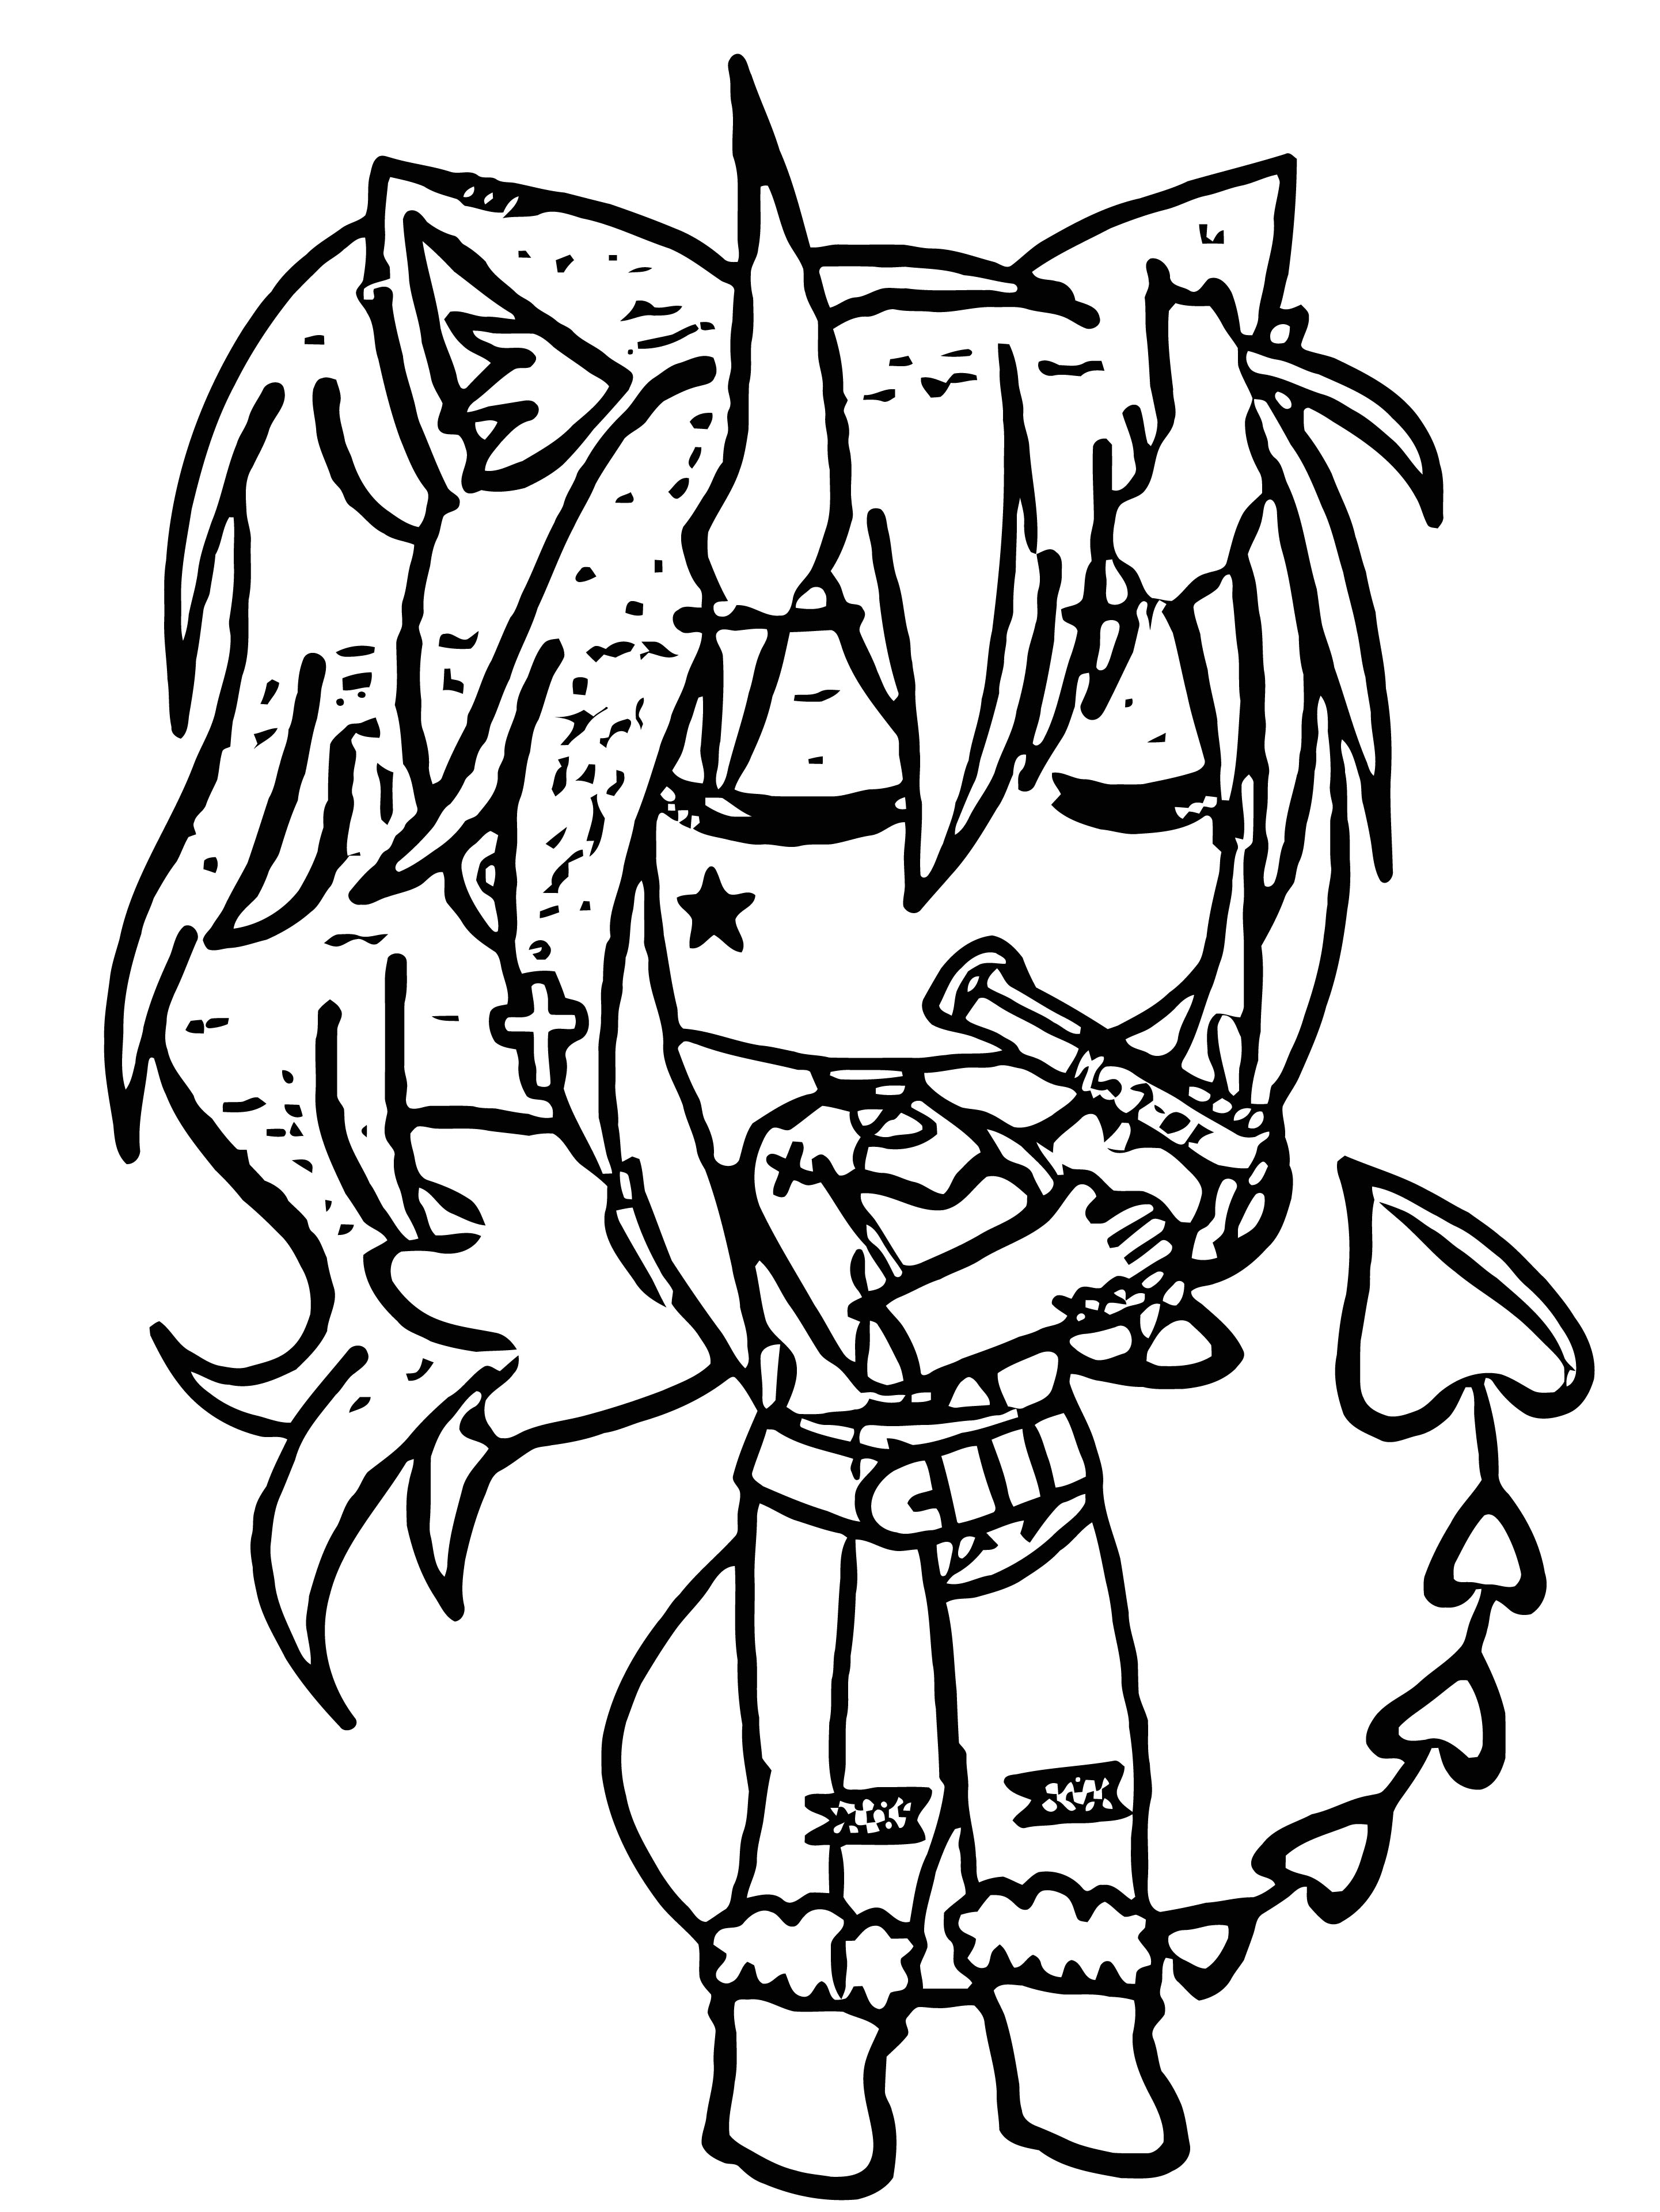 Done Gacha Life Wolf Girl Cute Hd Coloring Page